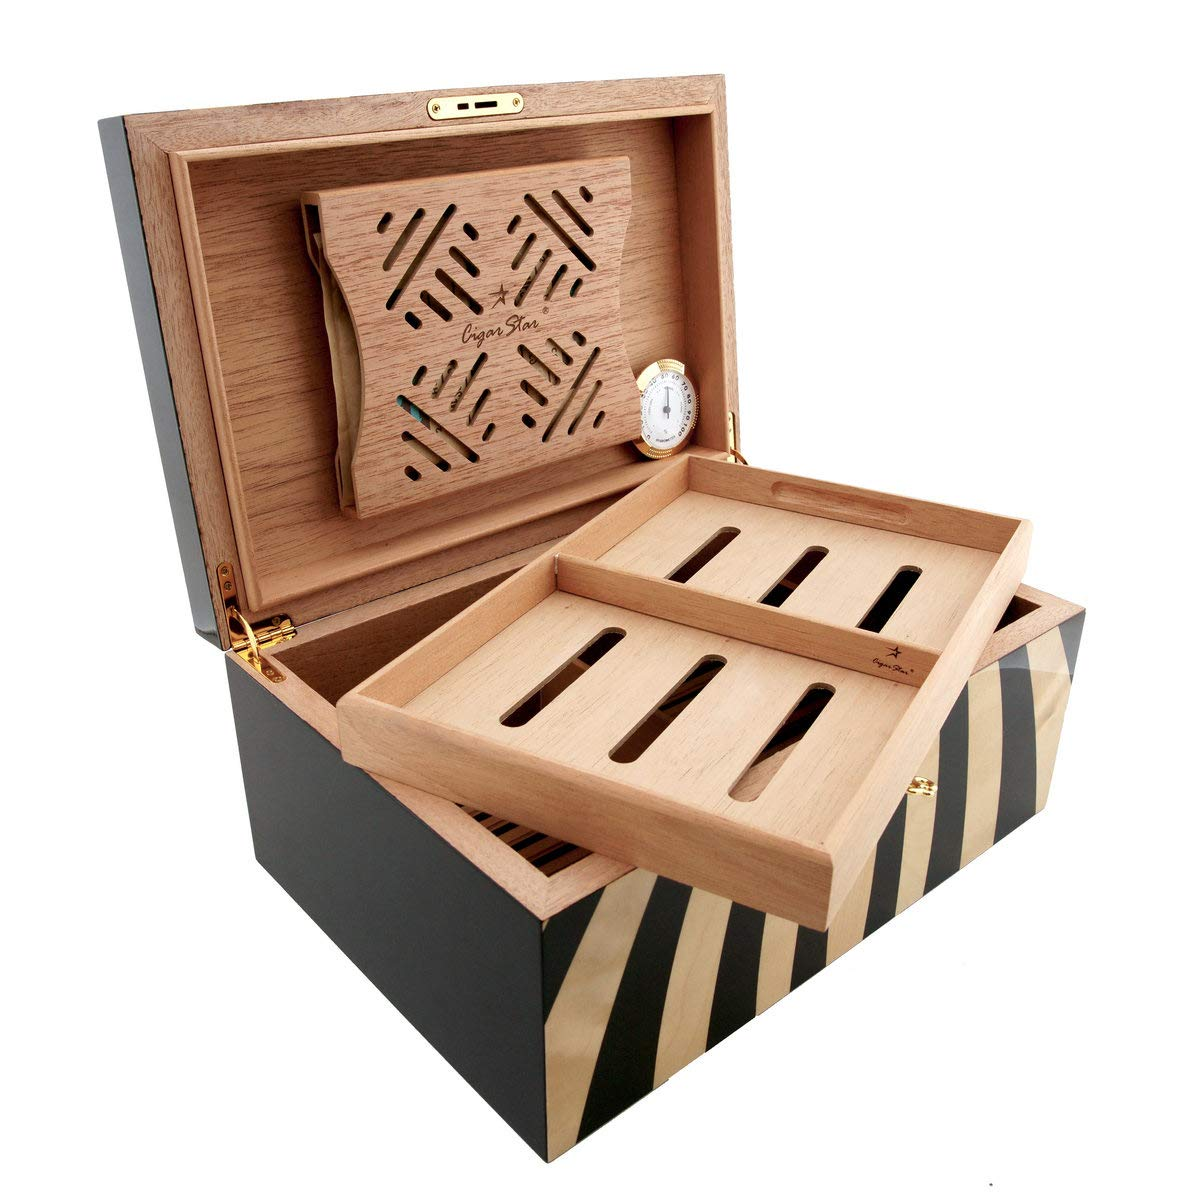 Cigar Star Boketto Humidor Limited Edition Optical Illusion Made from Wood! by Cigar Star (Image #5)